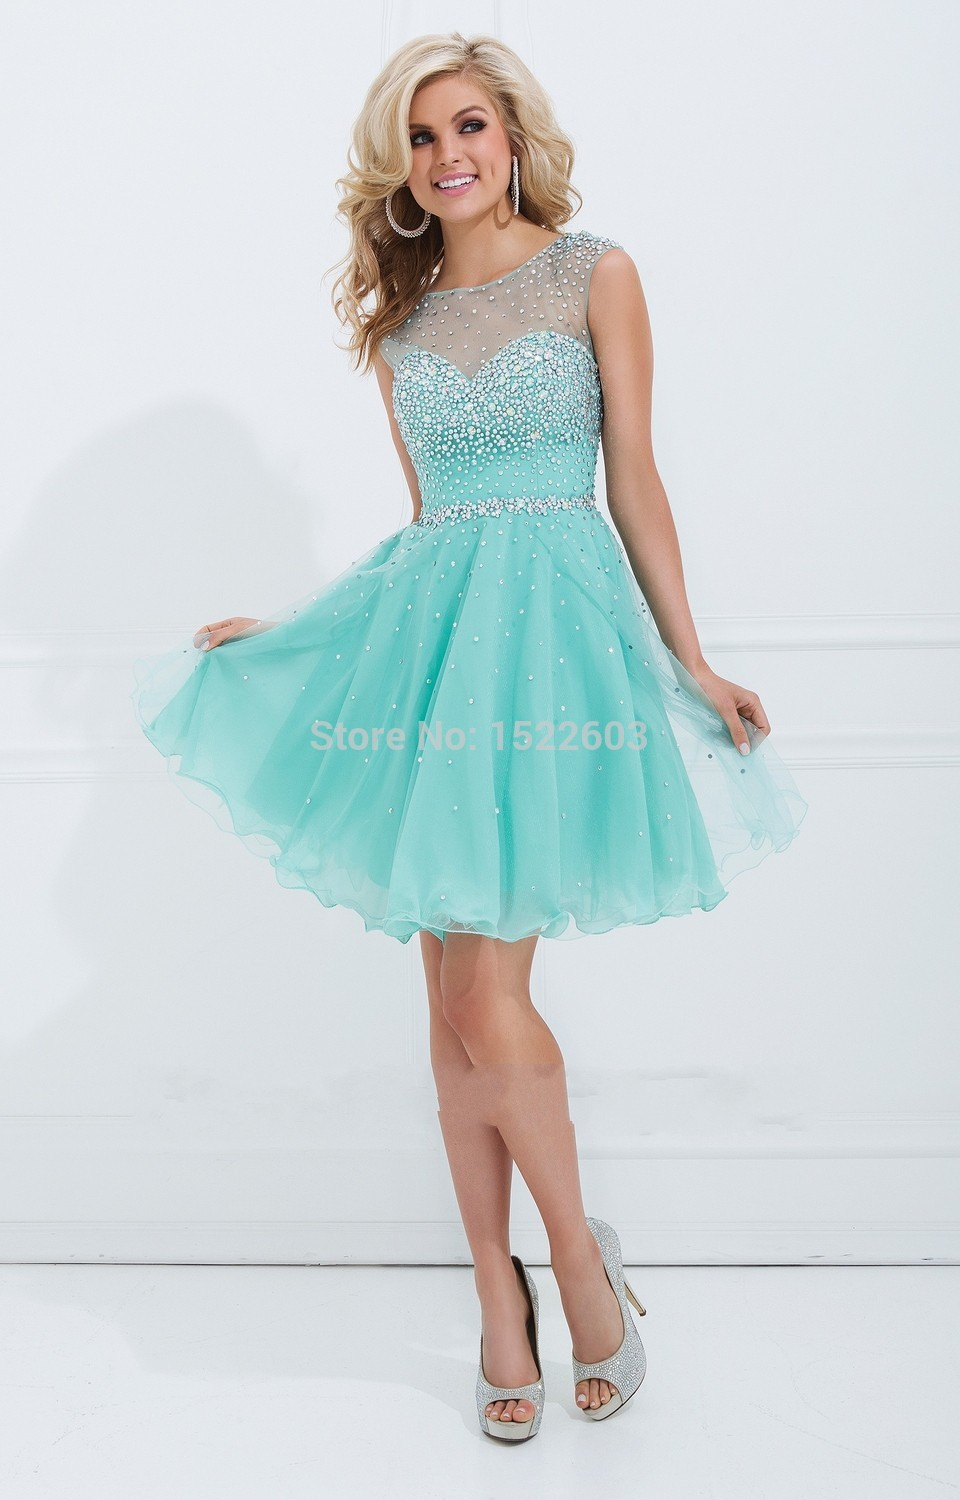 evening dresses for teenage girls | Gommap Blog